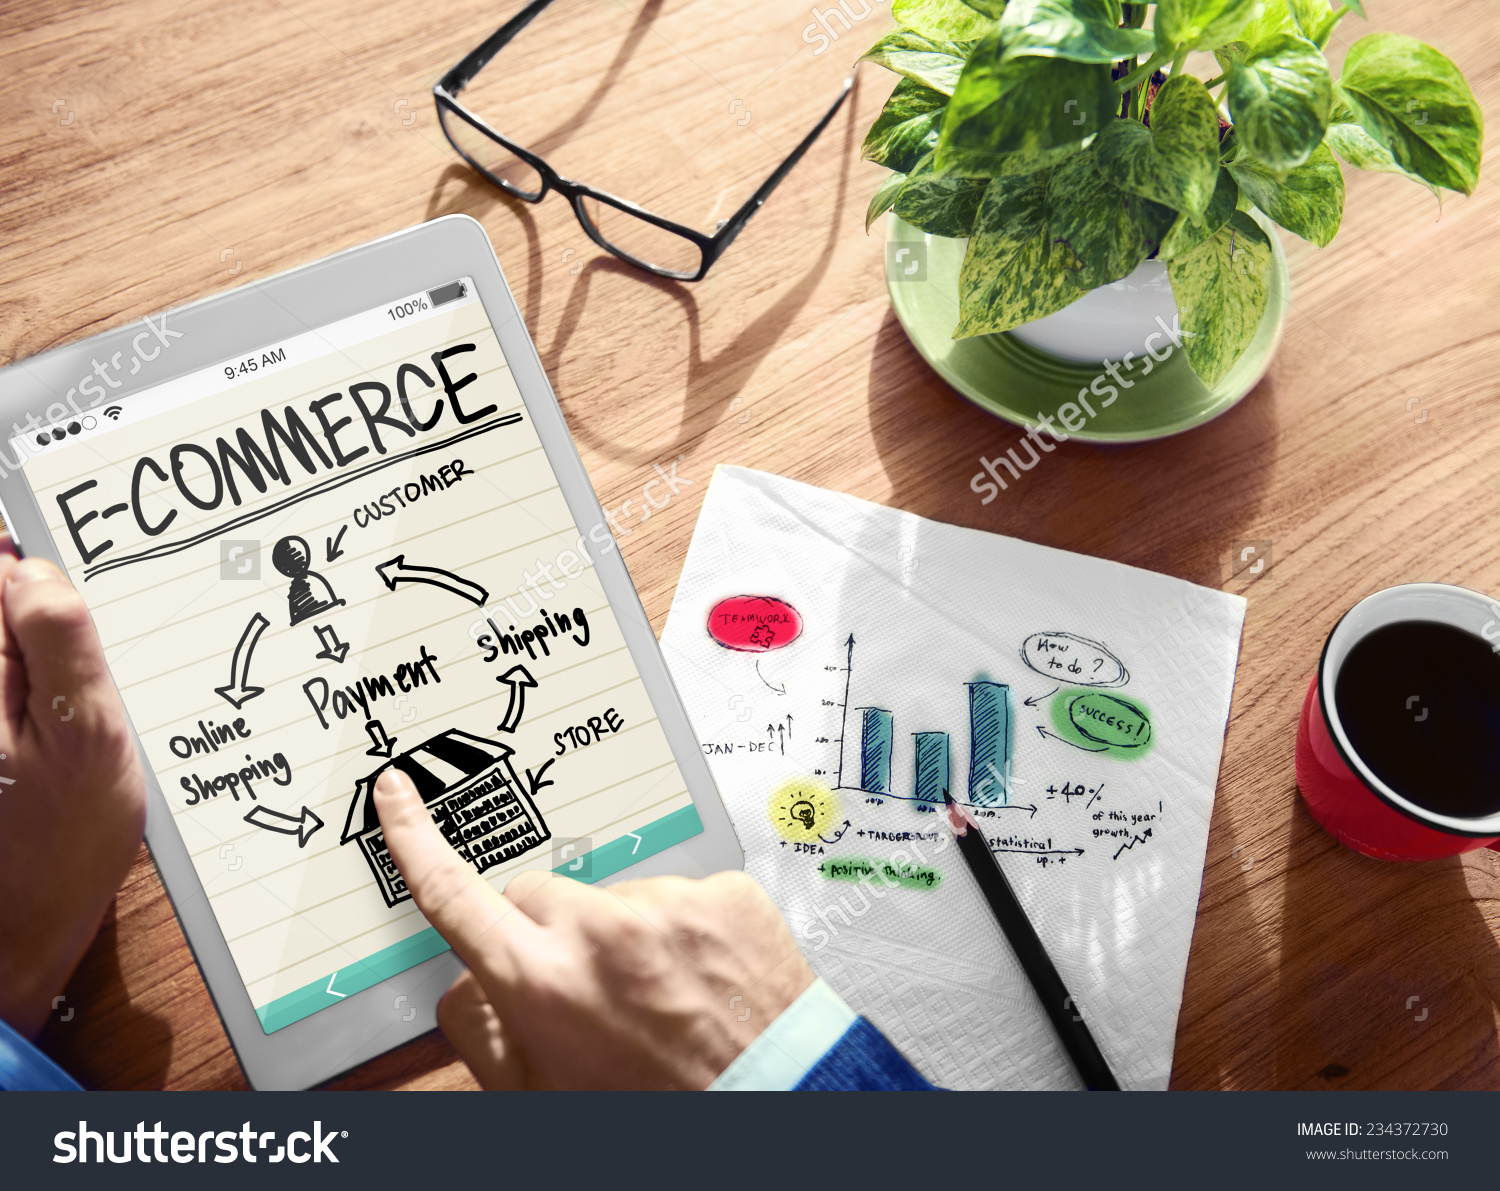 5 Ecommerce Business Ideas that Aspiring Entrepreneurs Can Bet upon Now - Image 1